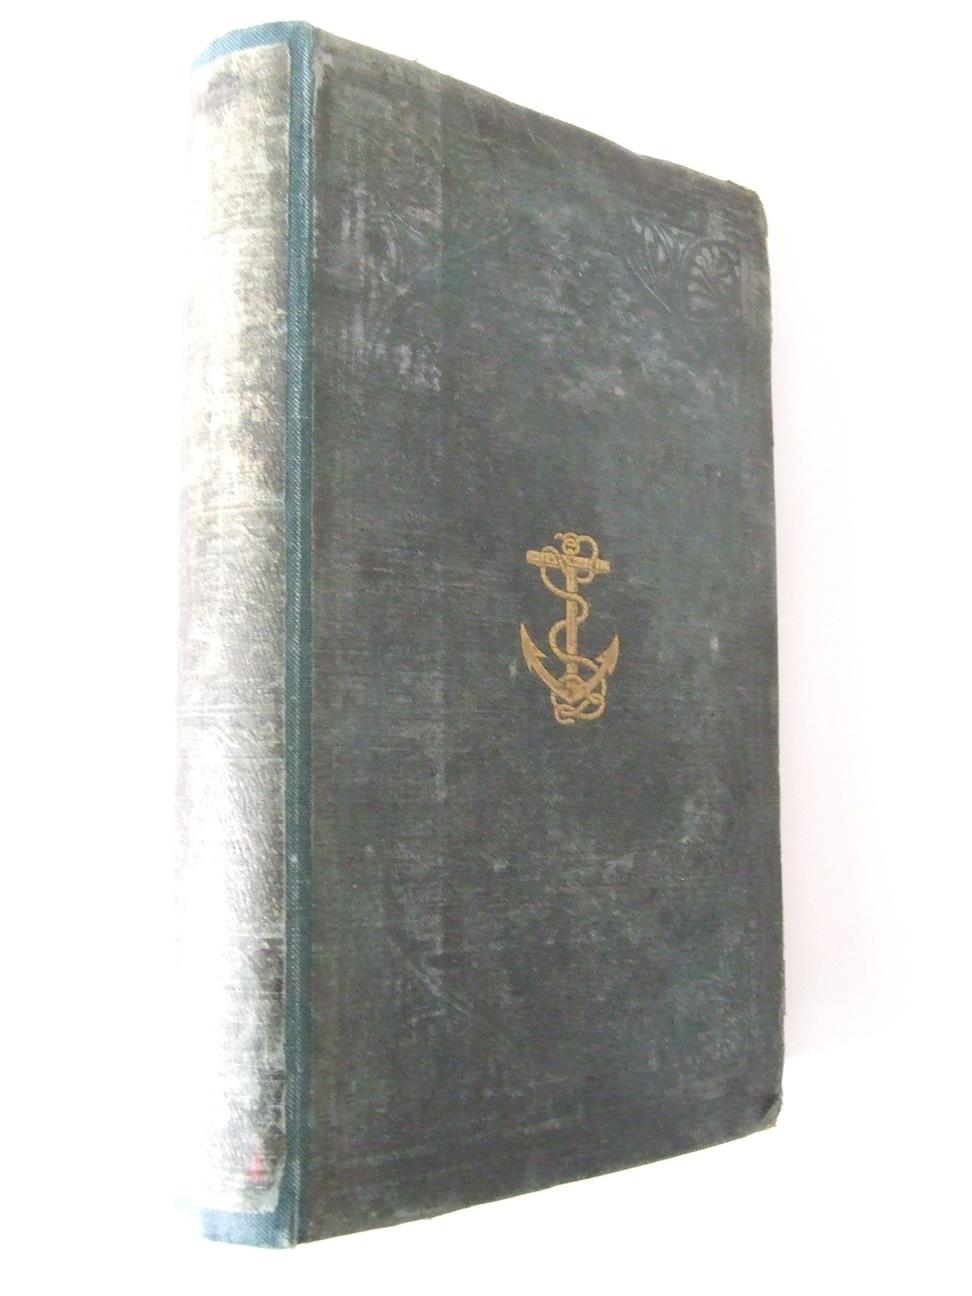 The Naval Officer's Manual, for every grade in Her Majesty's Ships